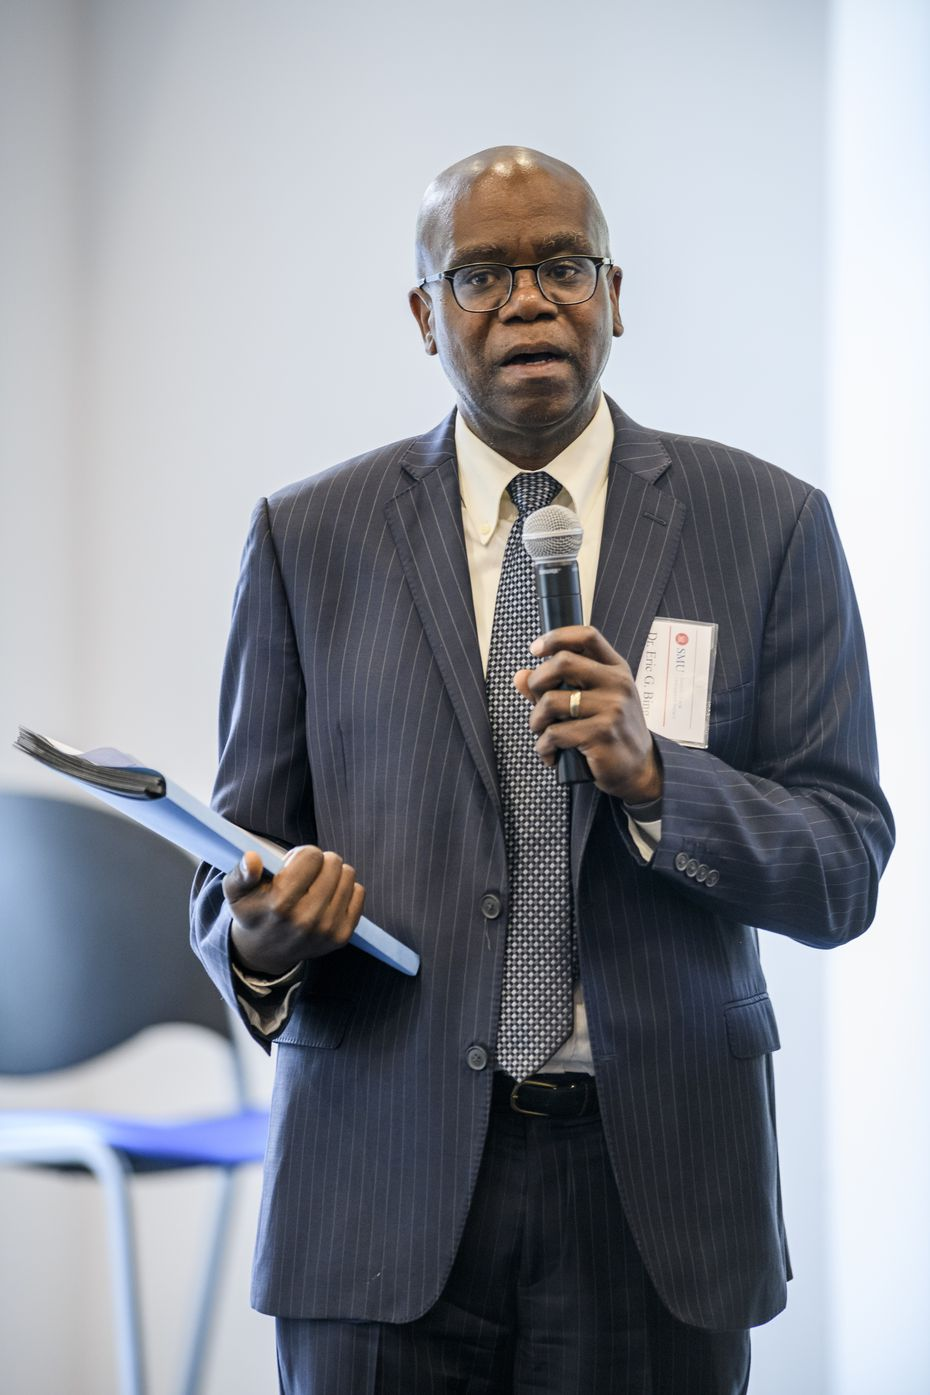 Dr. Eric Bing, a global health expert, at the Rural Superintendent Leadership Symposium at Harold Clark Simmons Hall on Wednesday, May 15, 2019, on the SMU Campus in Dallas. Bing and Beeson helped the Dallas Theater Center and SMU Meadows with their reopening plans.